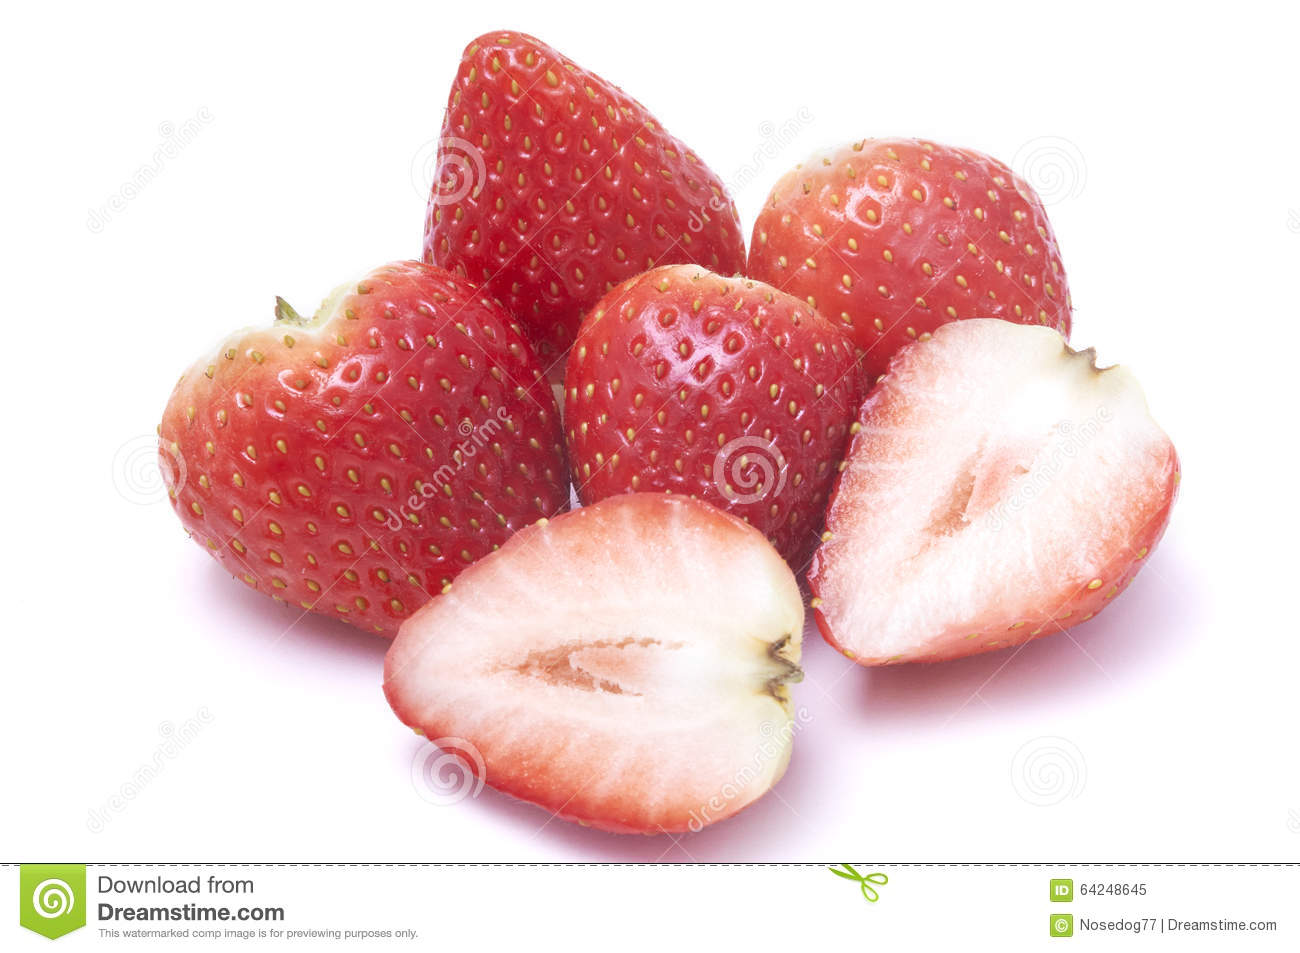 how to make strawberries juicy